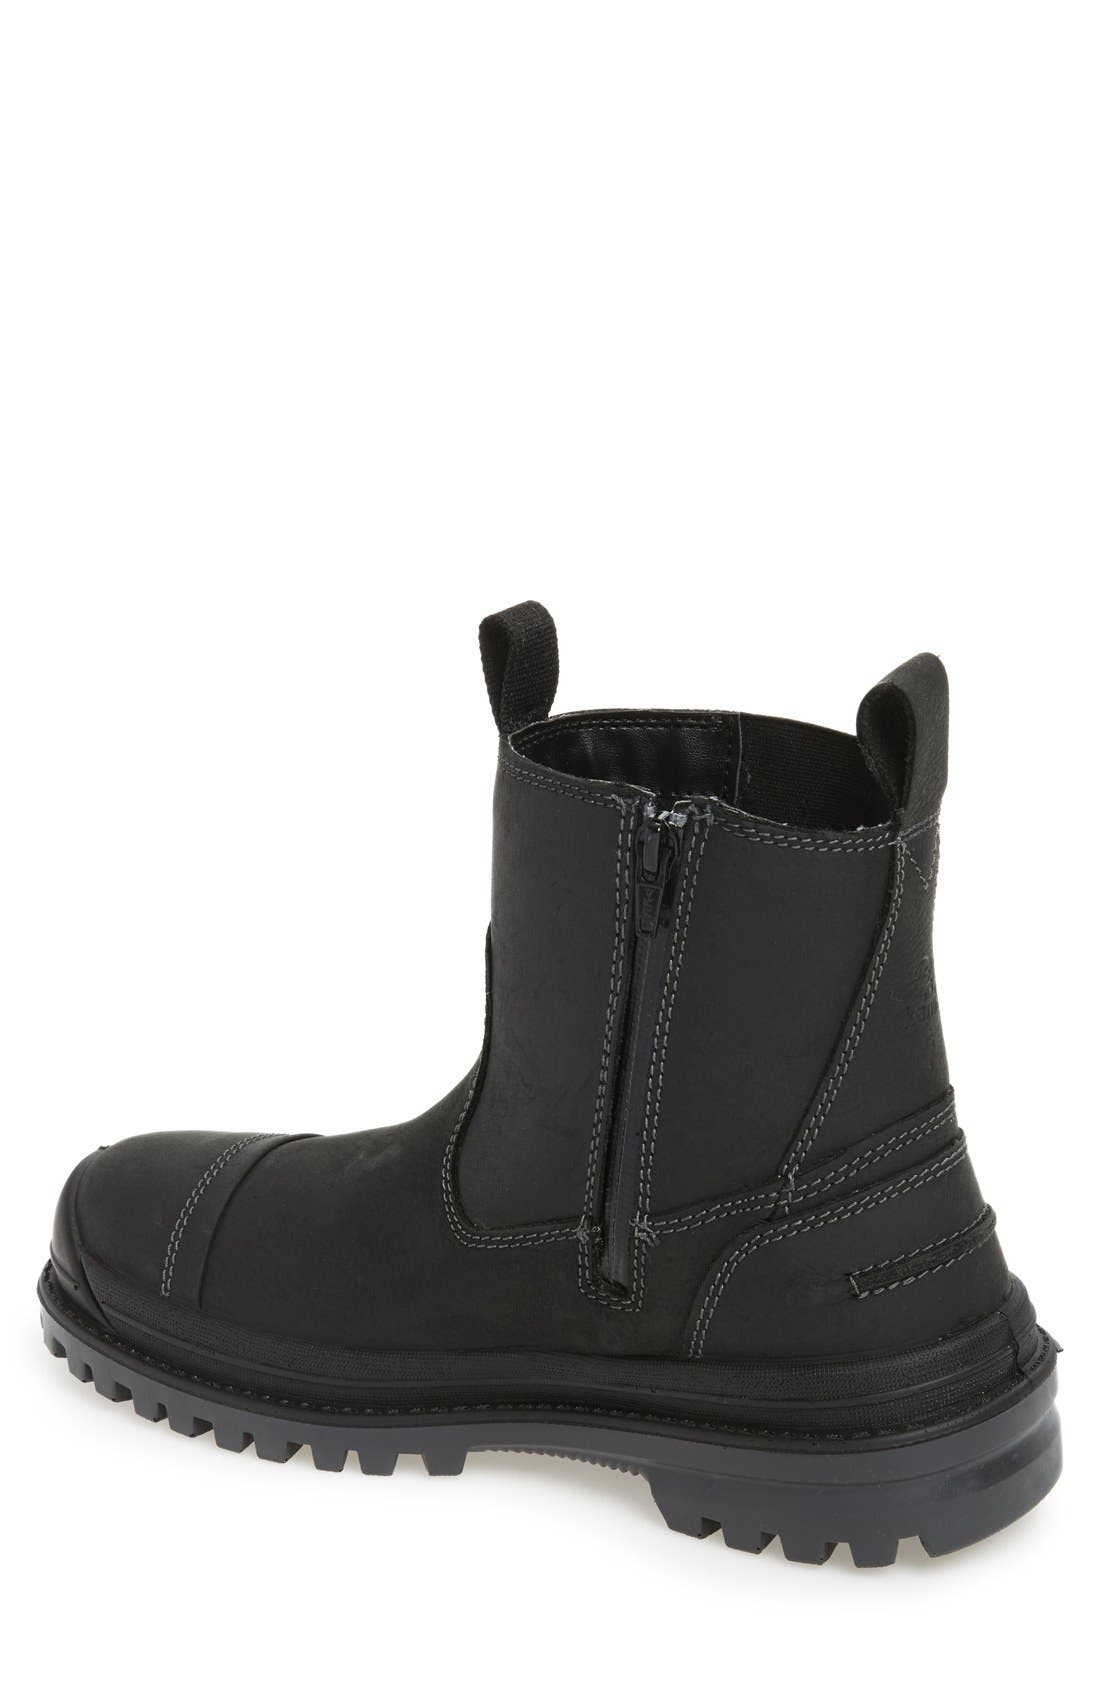 Griffon Snow Waterproof Boot,                             Alternate thumbnail 2, color,                             BLACK LEATHER